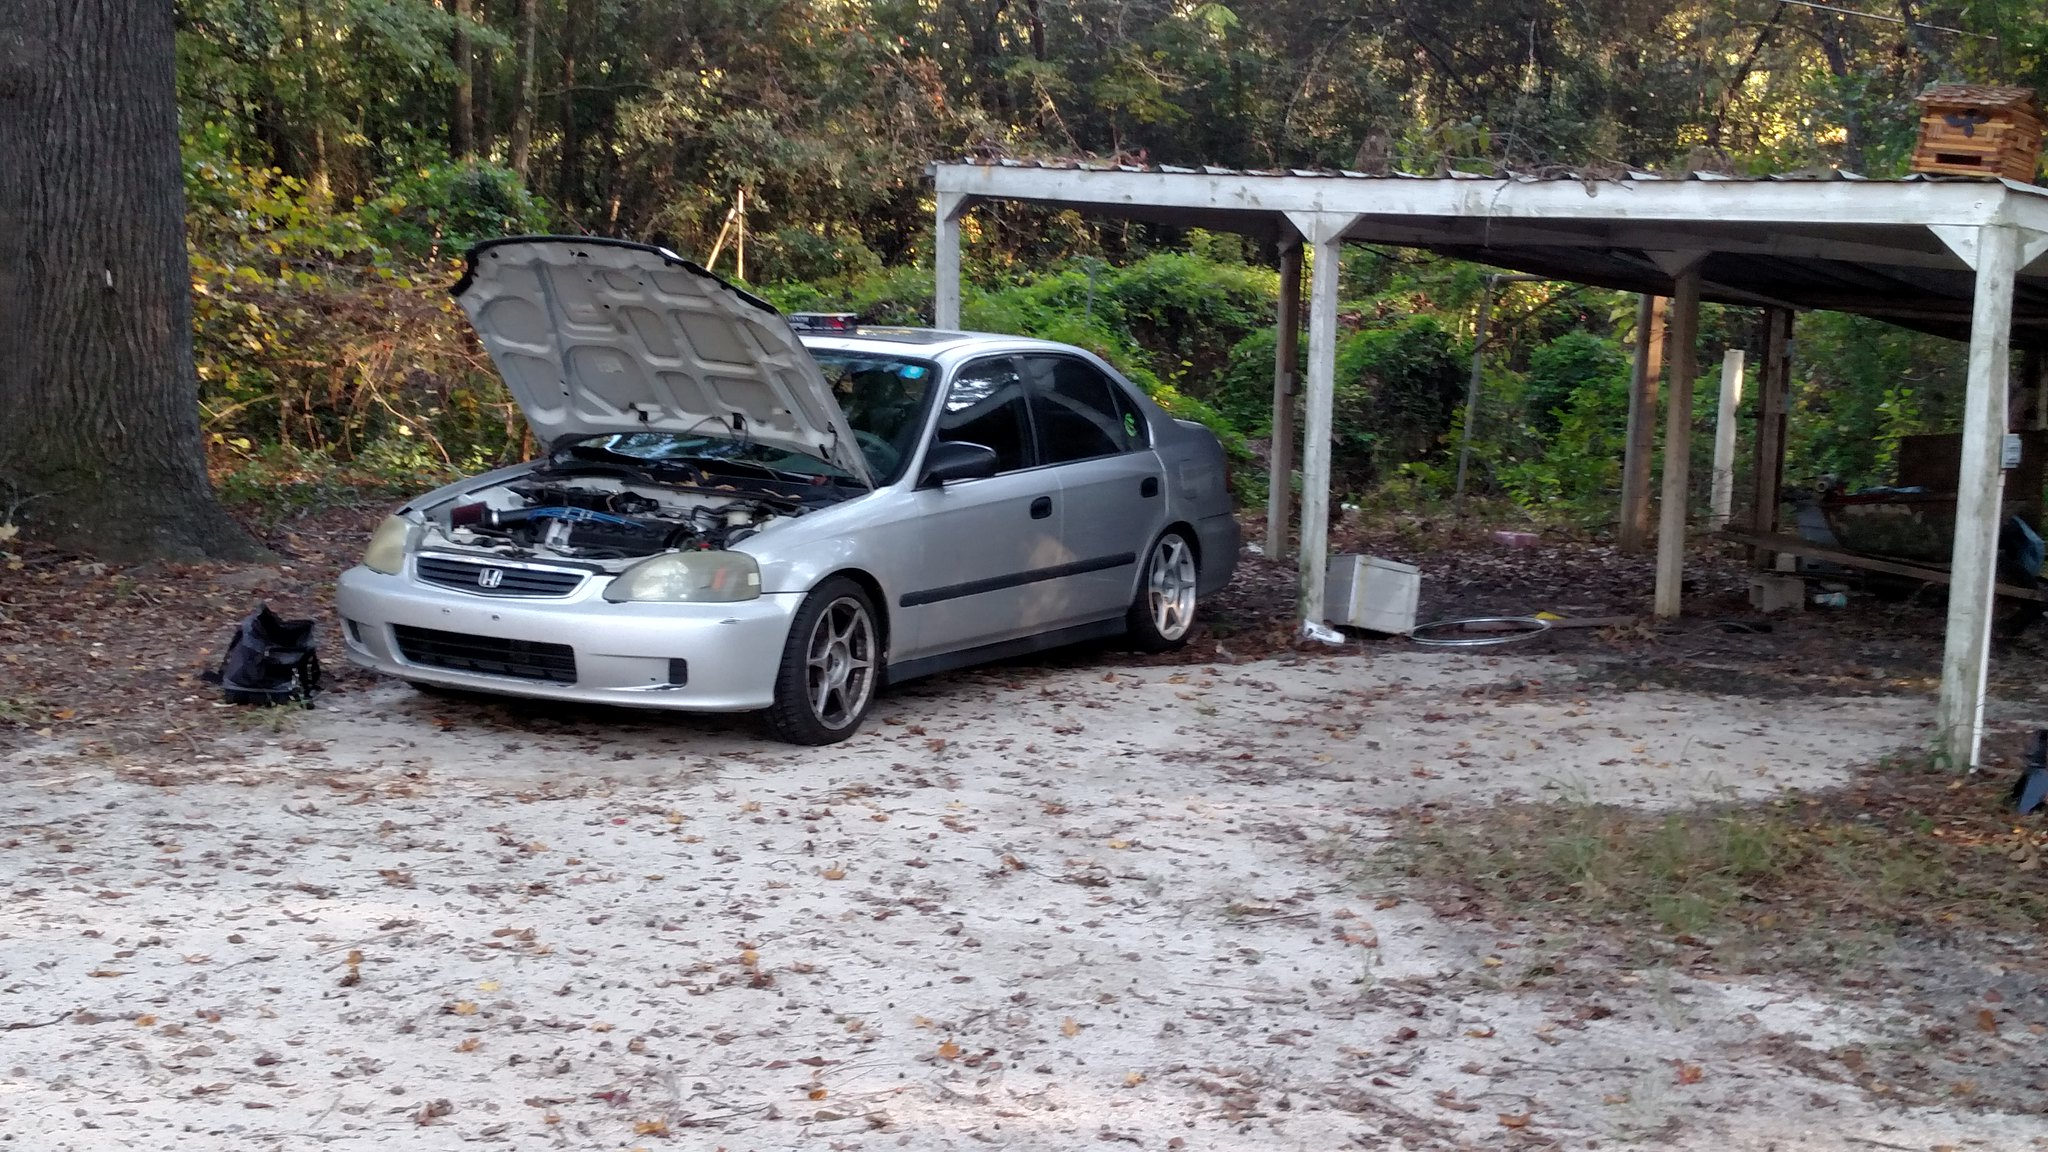 Improving An Appliance Honda Content Builds And Project Cars Forum Schematic Diagram Example Diy Electric Car Forums I Originally Bought The In 2007 With Intentions Of Leaving It Alone To Focus On My 1990 Crx That Went Out Window Almost Immediately Was Lowered